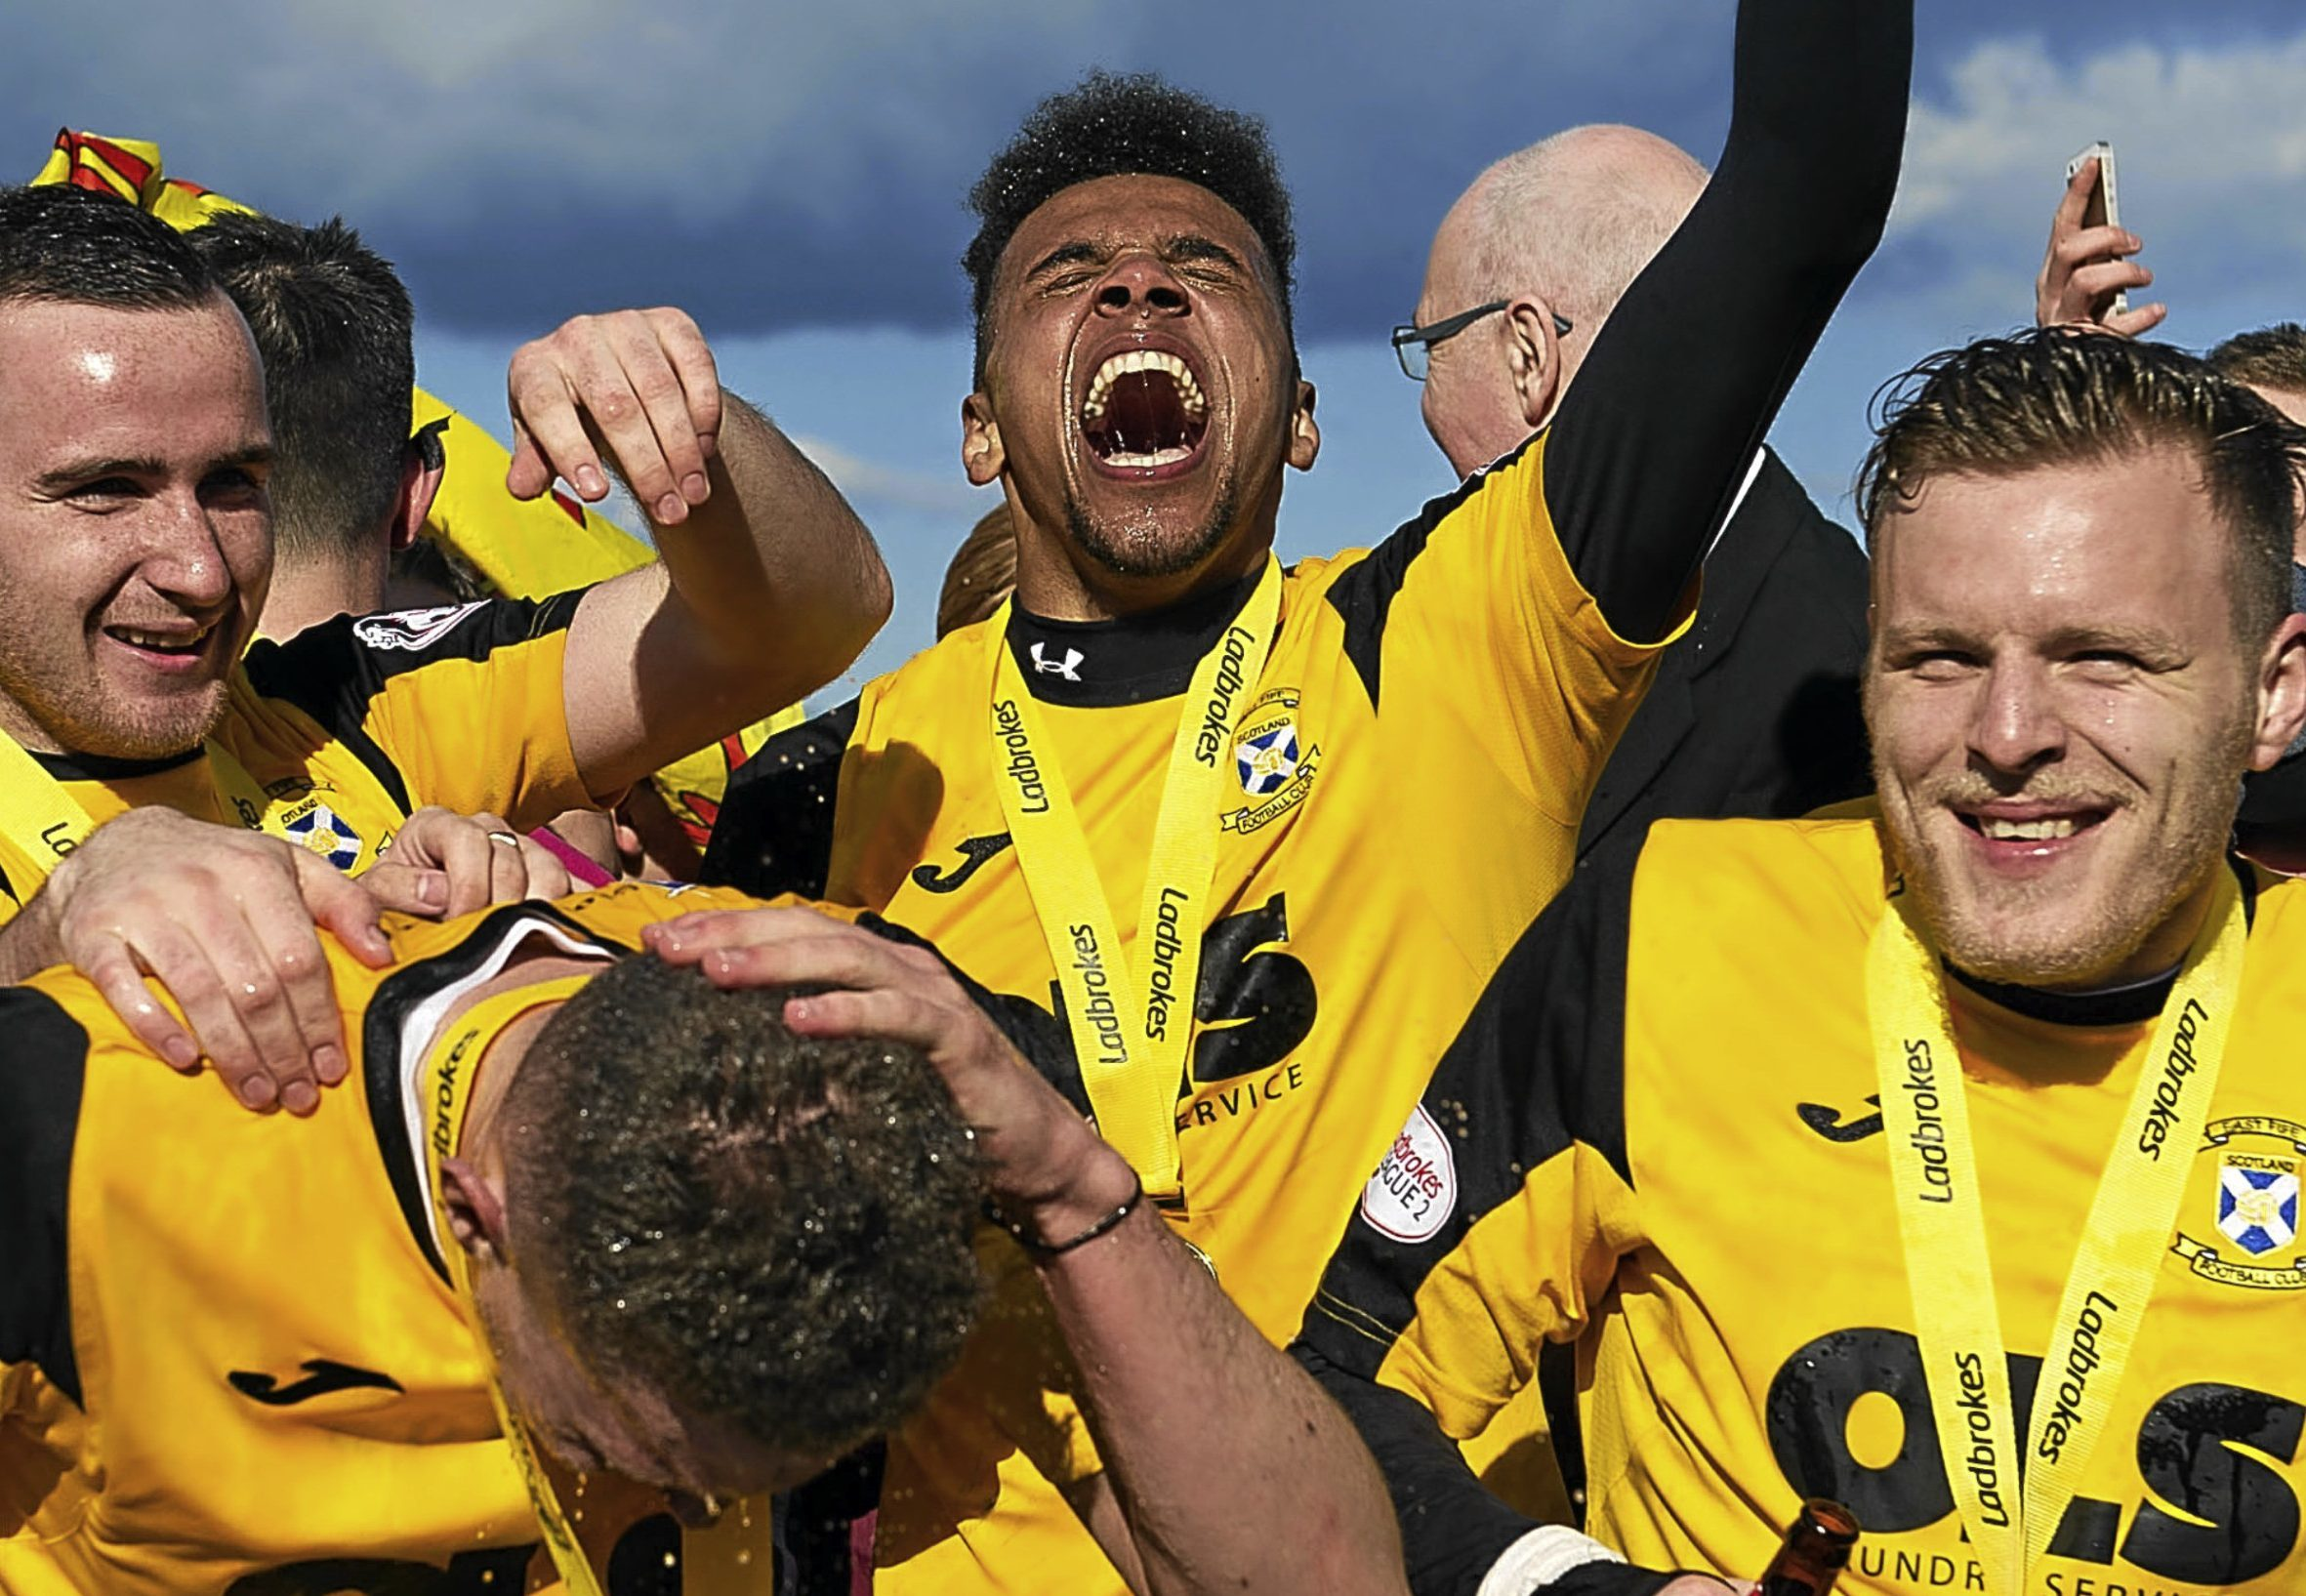 Party time for East Fife.